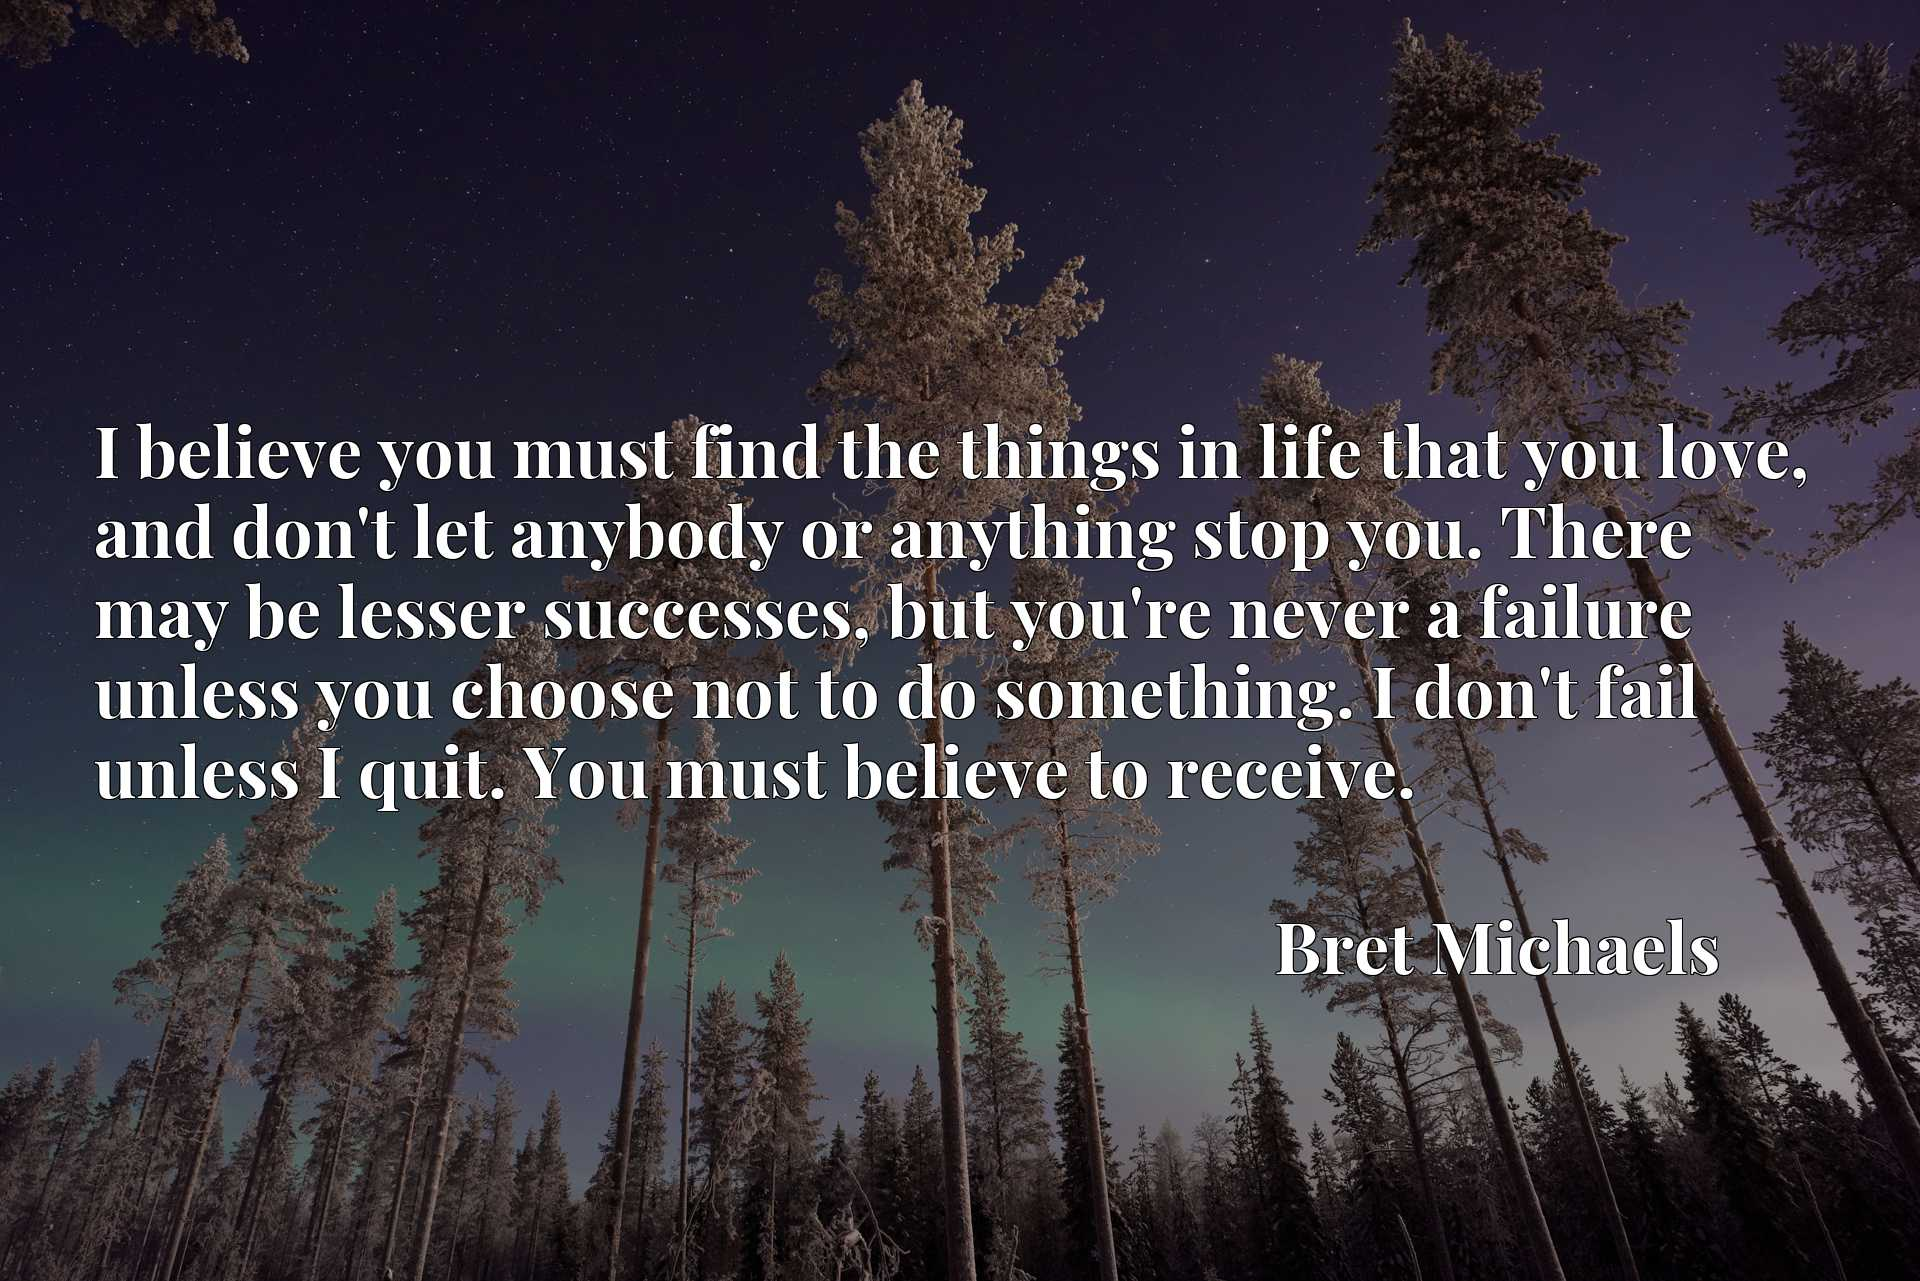 I believe you must find the things in life that you love, and don't let anybody or anything stop you. There may be lesser successes, but you're never a failure unless you choose not to do something. I don't fail unless I quit. You must believe to receive.